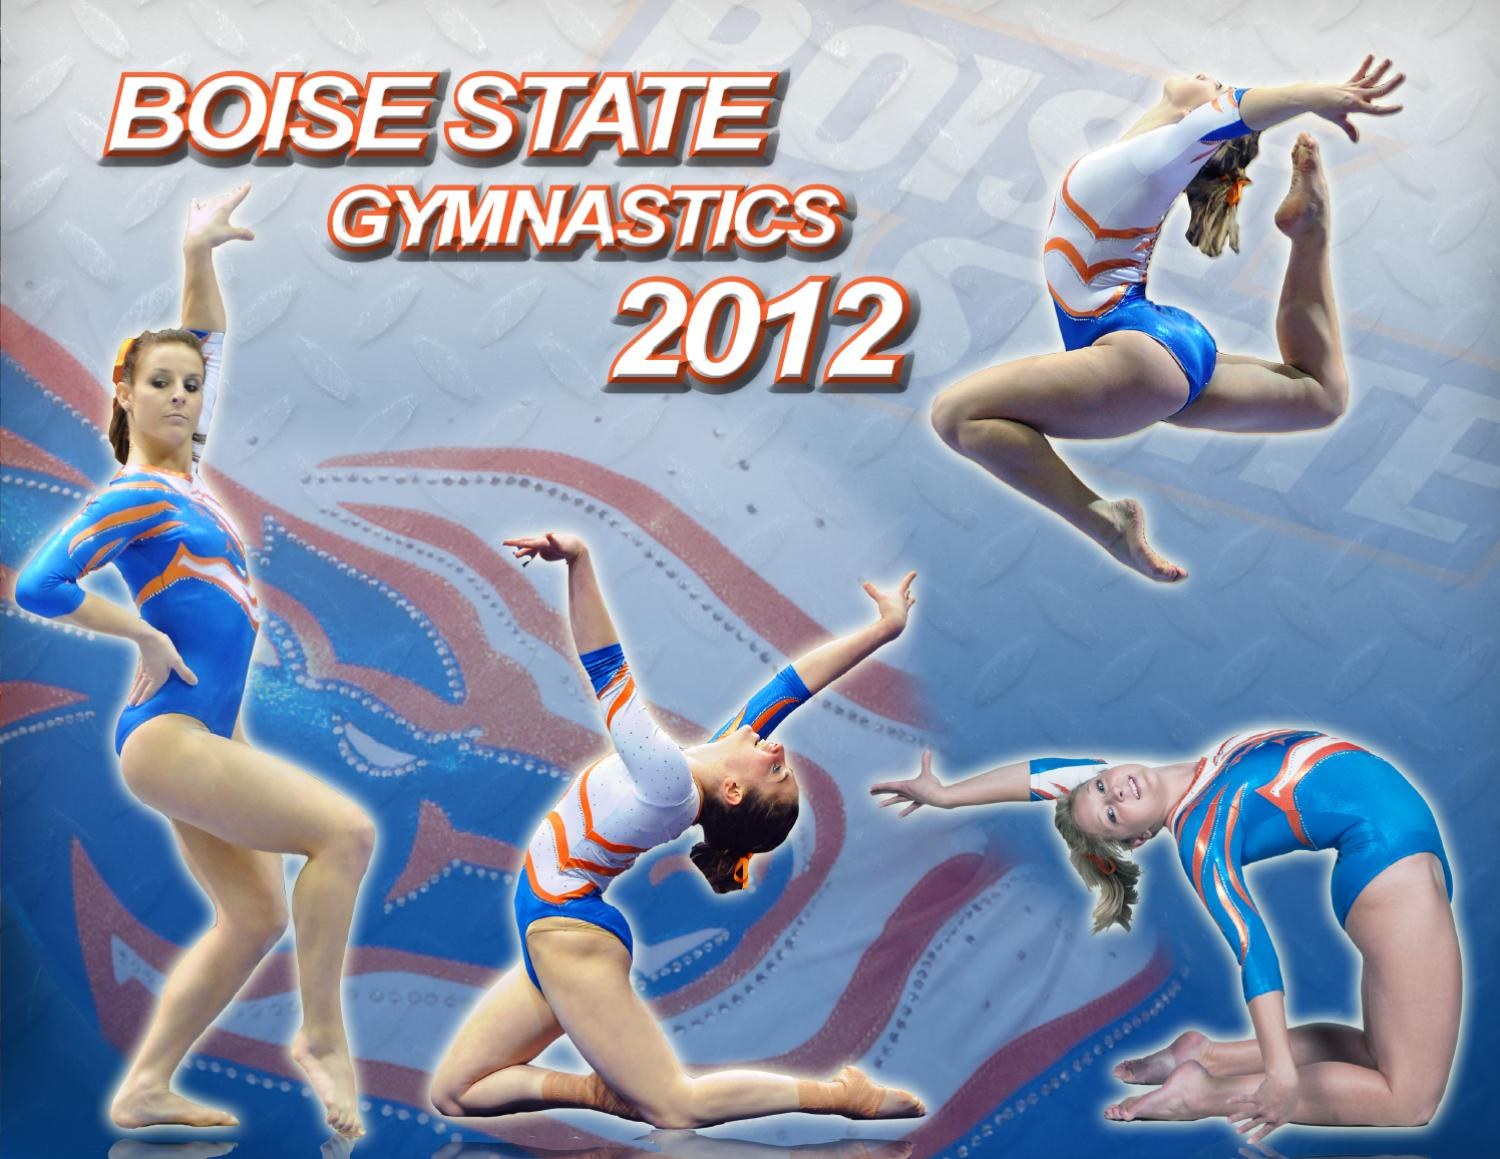 2012 Boise State Gymanstics Yearbook By Boise State University Issuu